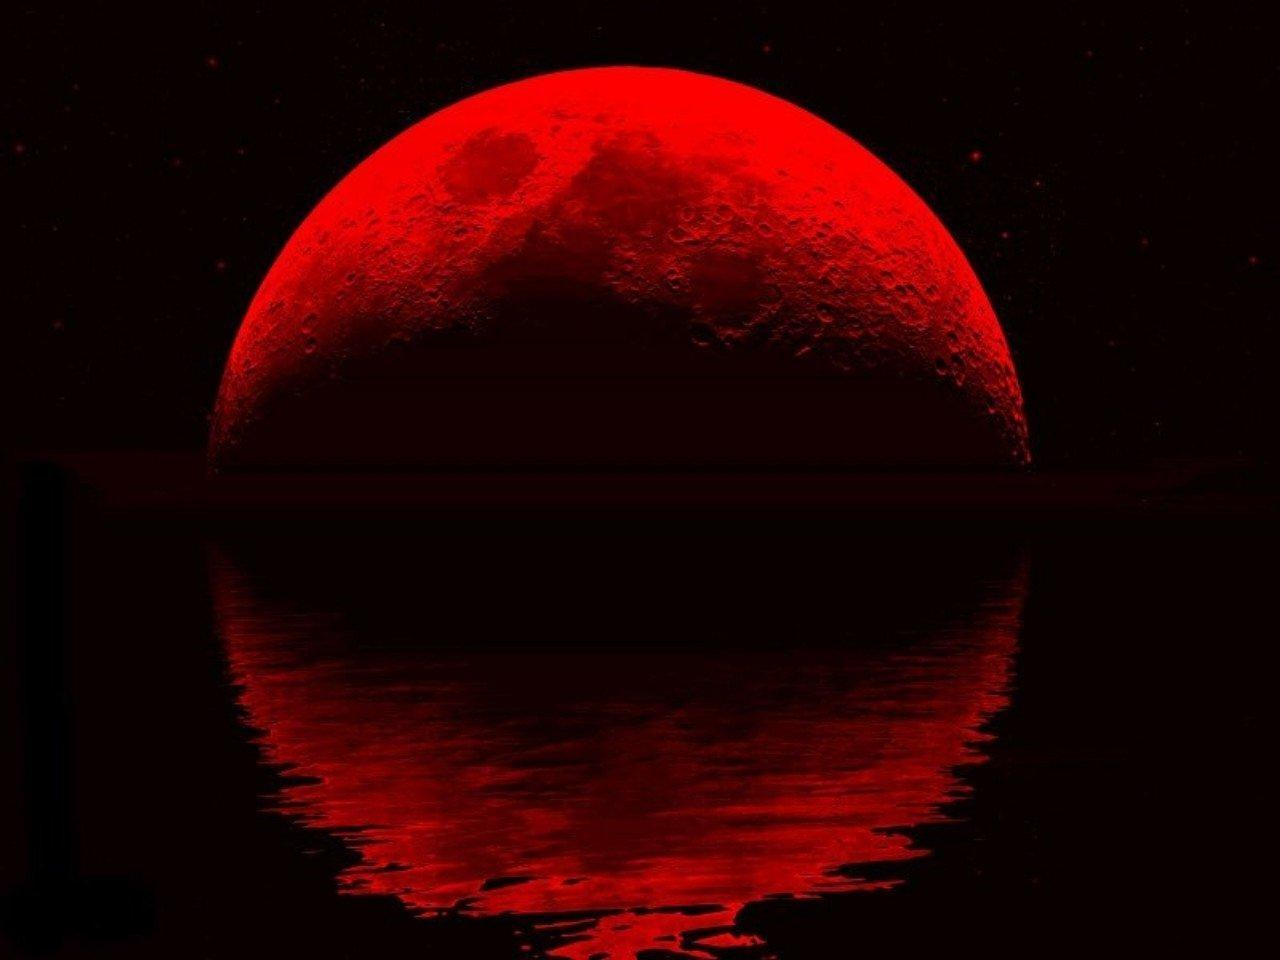 Blood Love Wallpaper For Mobile : Blood Moon Wallpapers - Wallpaper cave